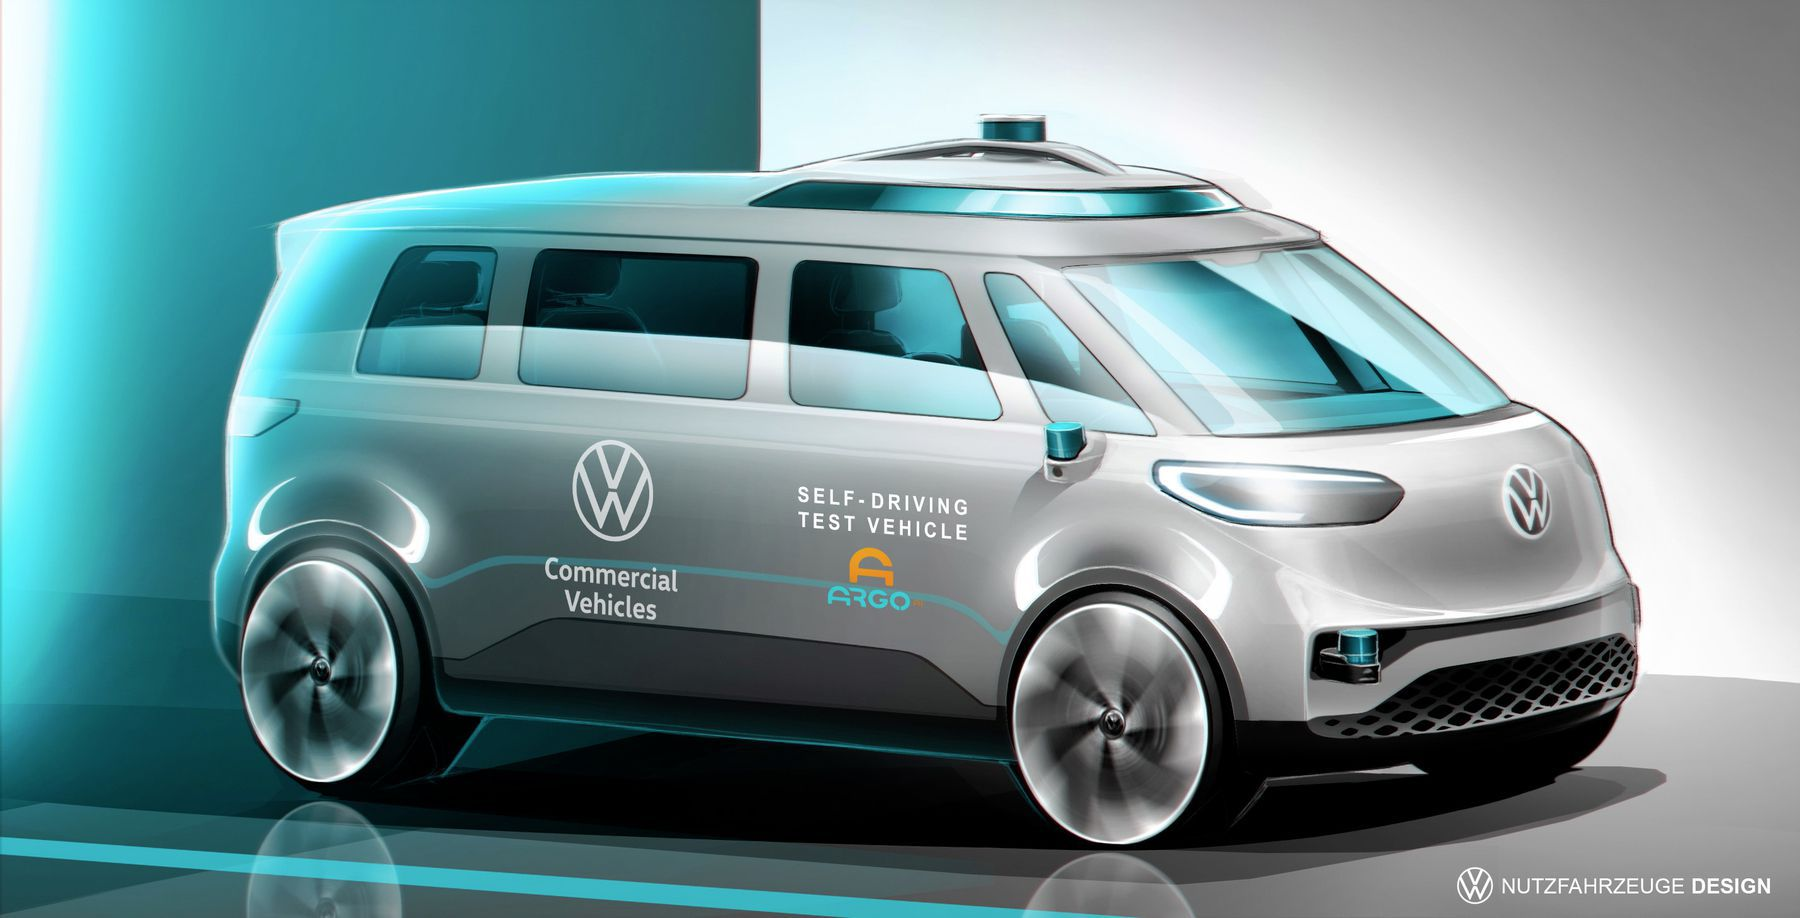 Volkswagen considers hourly subscriptions on EVs for autonomous driving